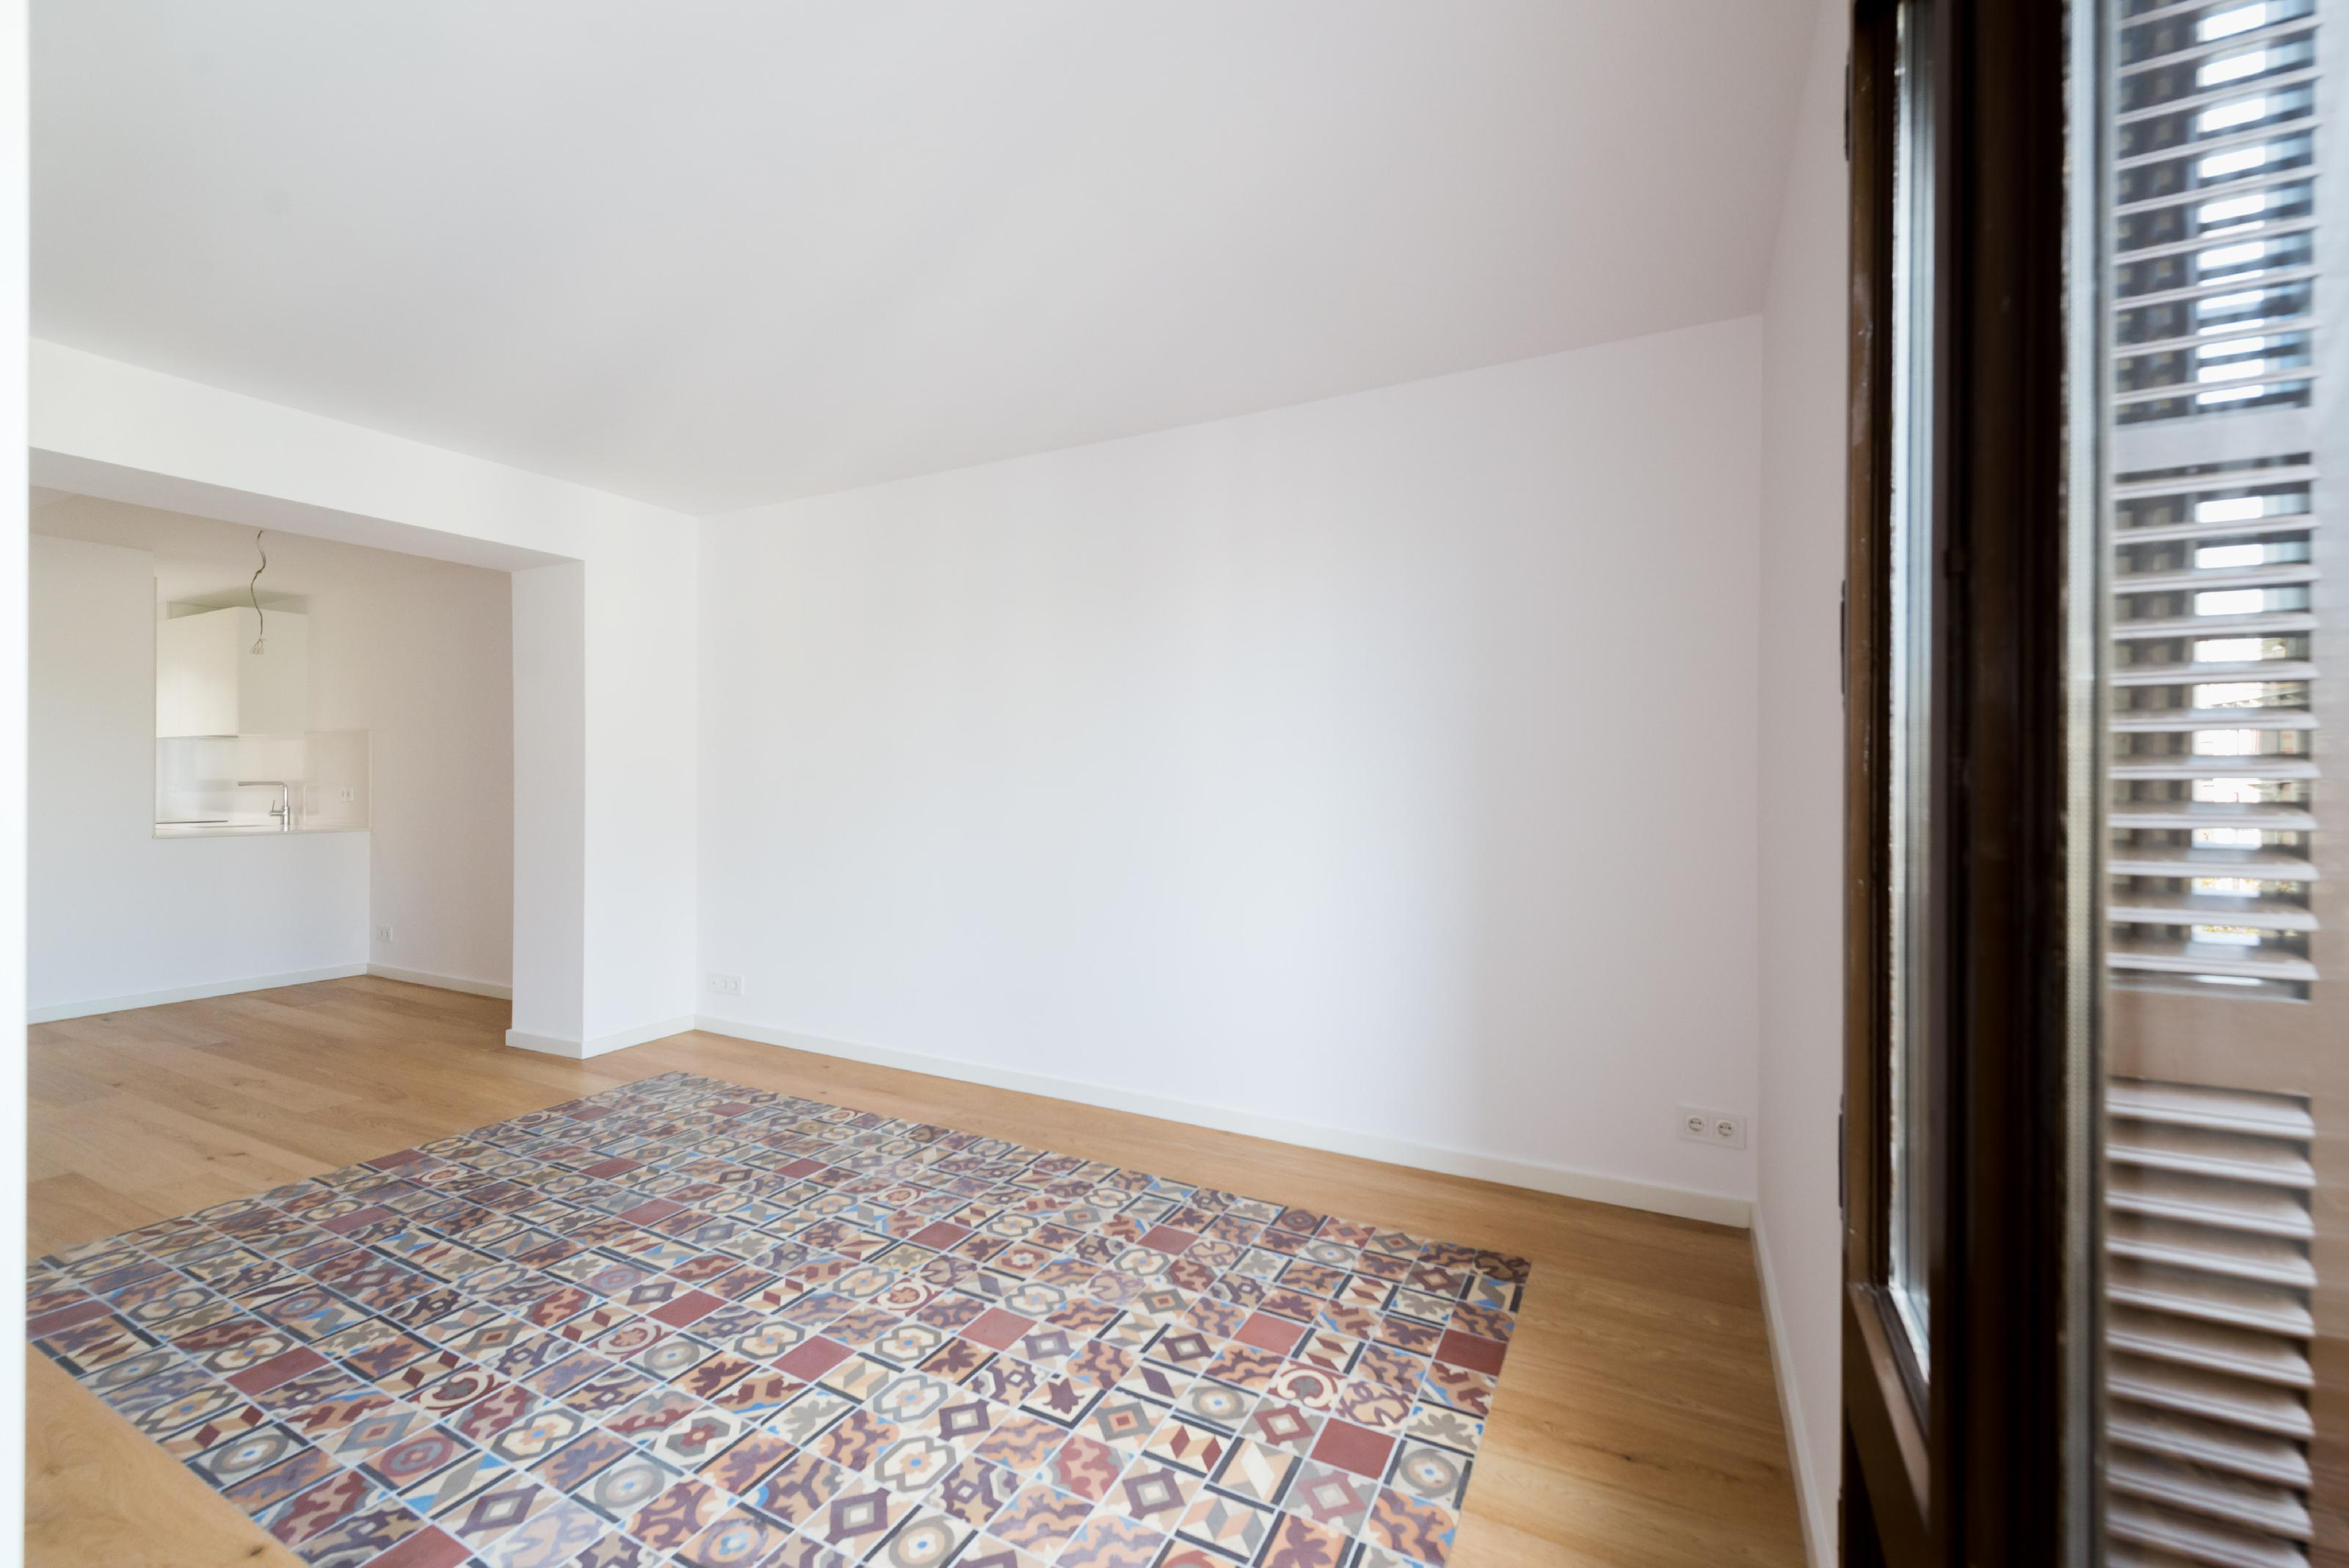 236358 Flat for sale in Eixample, Old Left Eixample 12